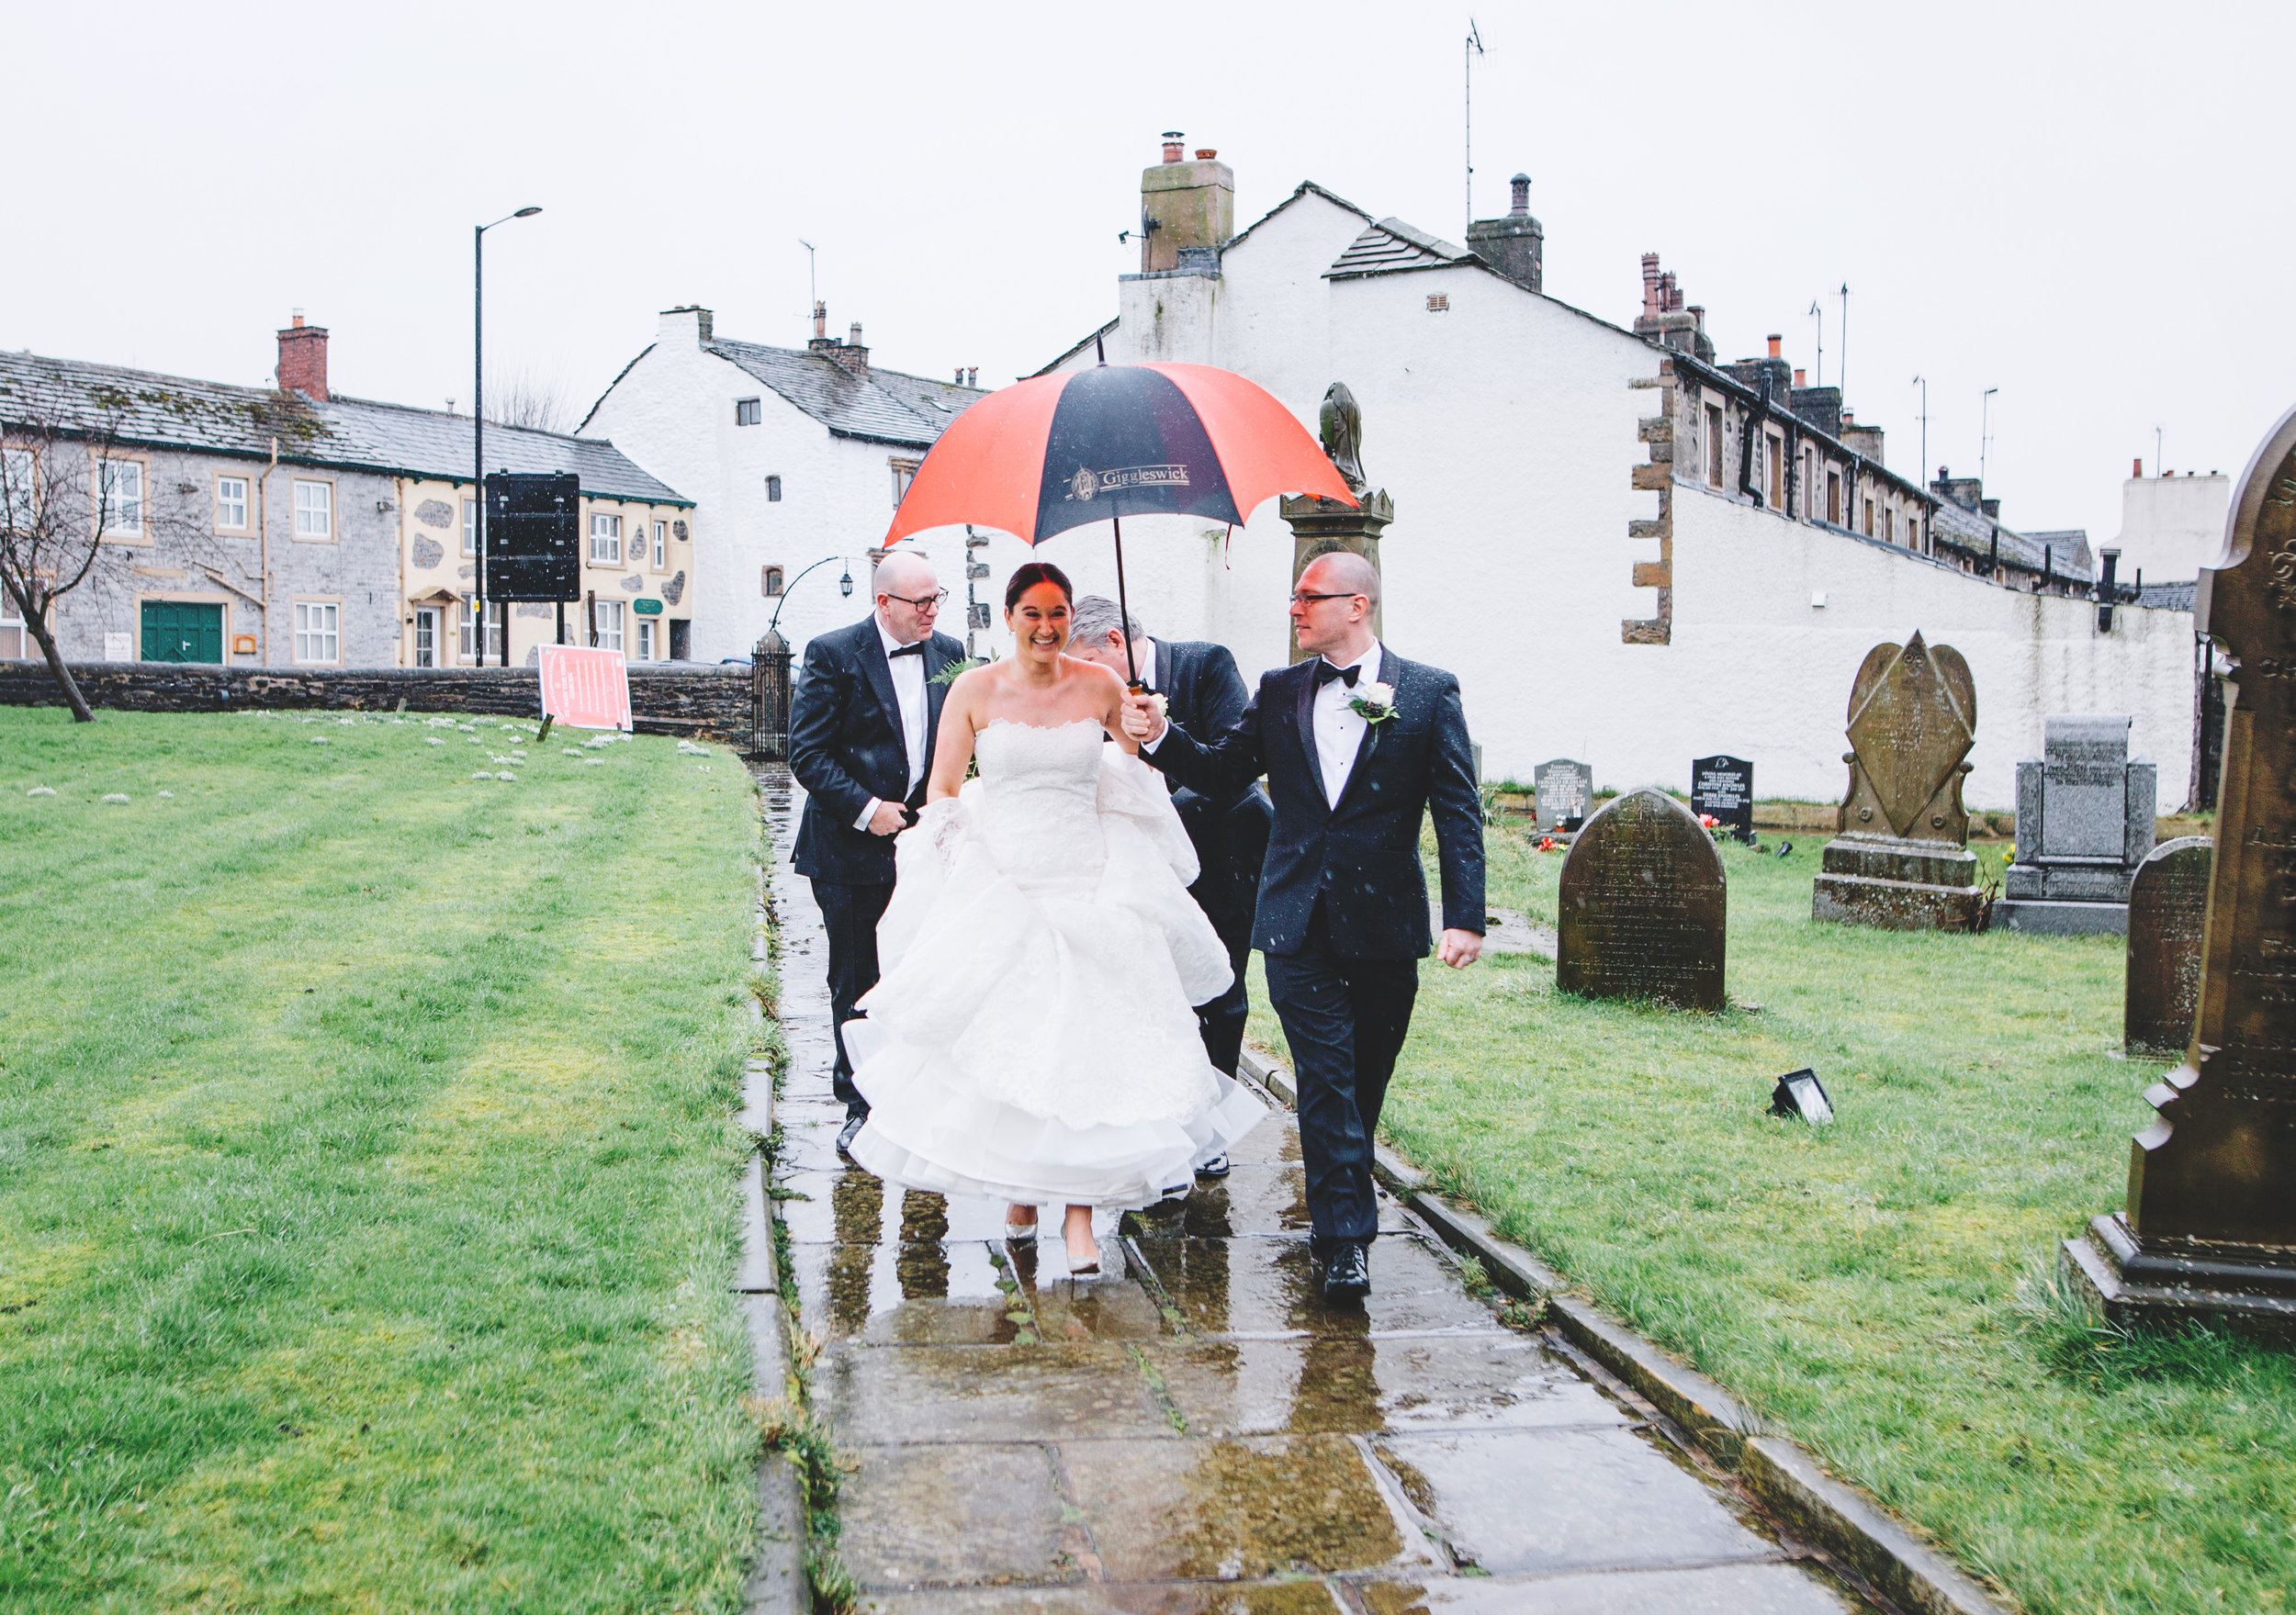 wedding in the rain - bride walks to church